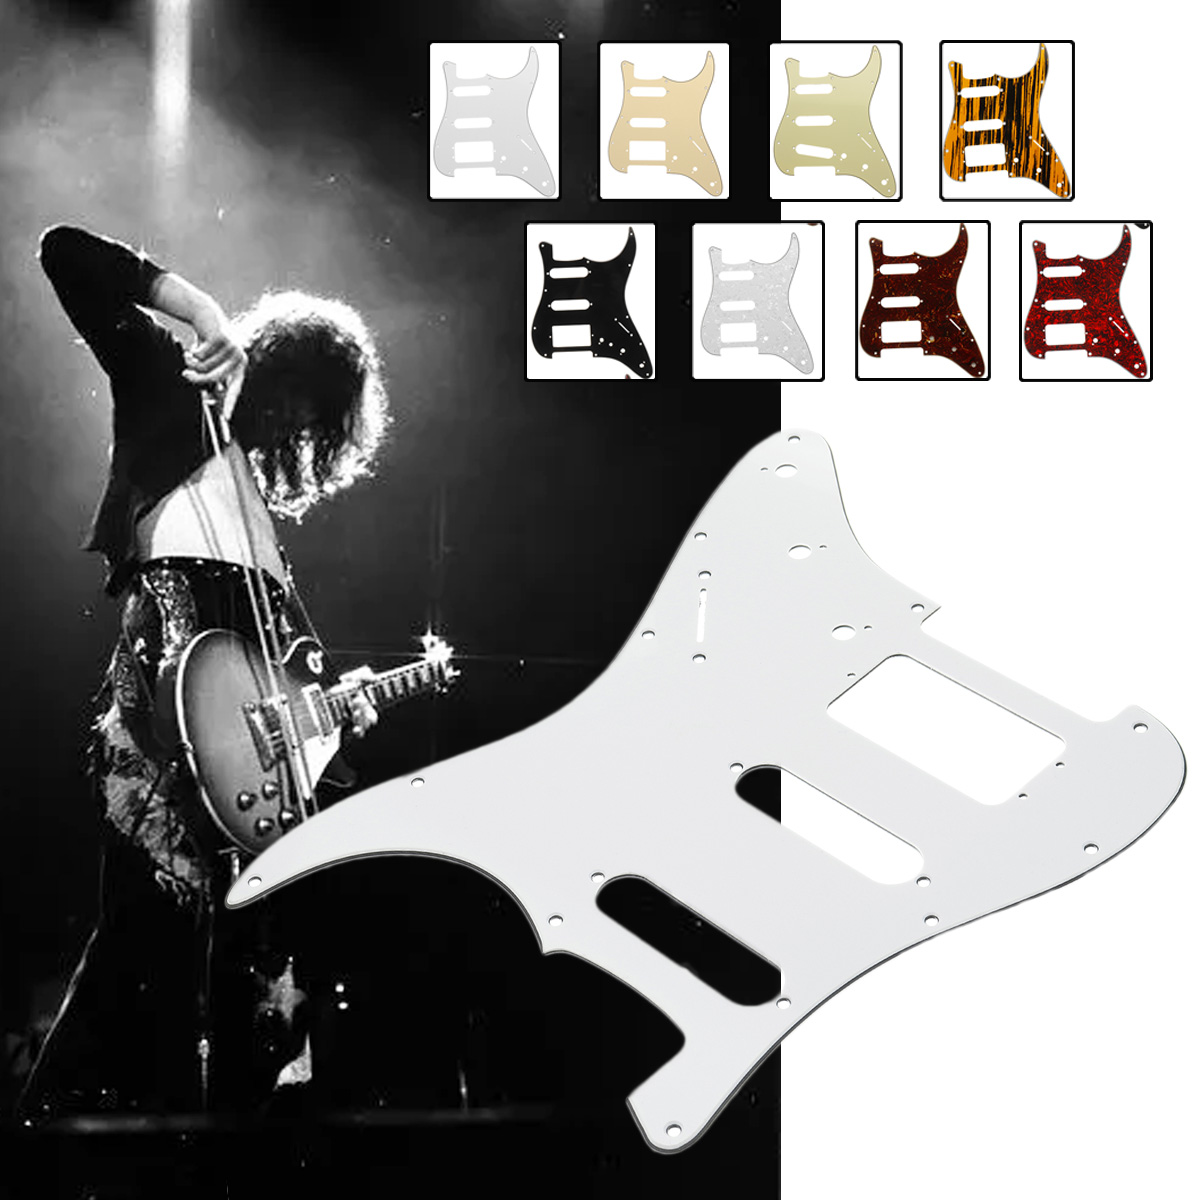 3ply HSS Humbucker Electric Guitar Pickguard Scratch Plate 3ply 11 Hole HSS For USA/MEX Fender for Stratocaster Strat(China)